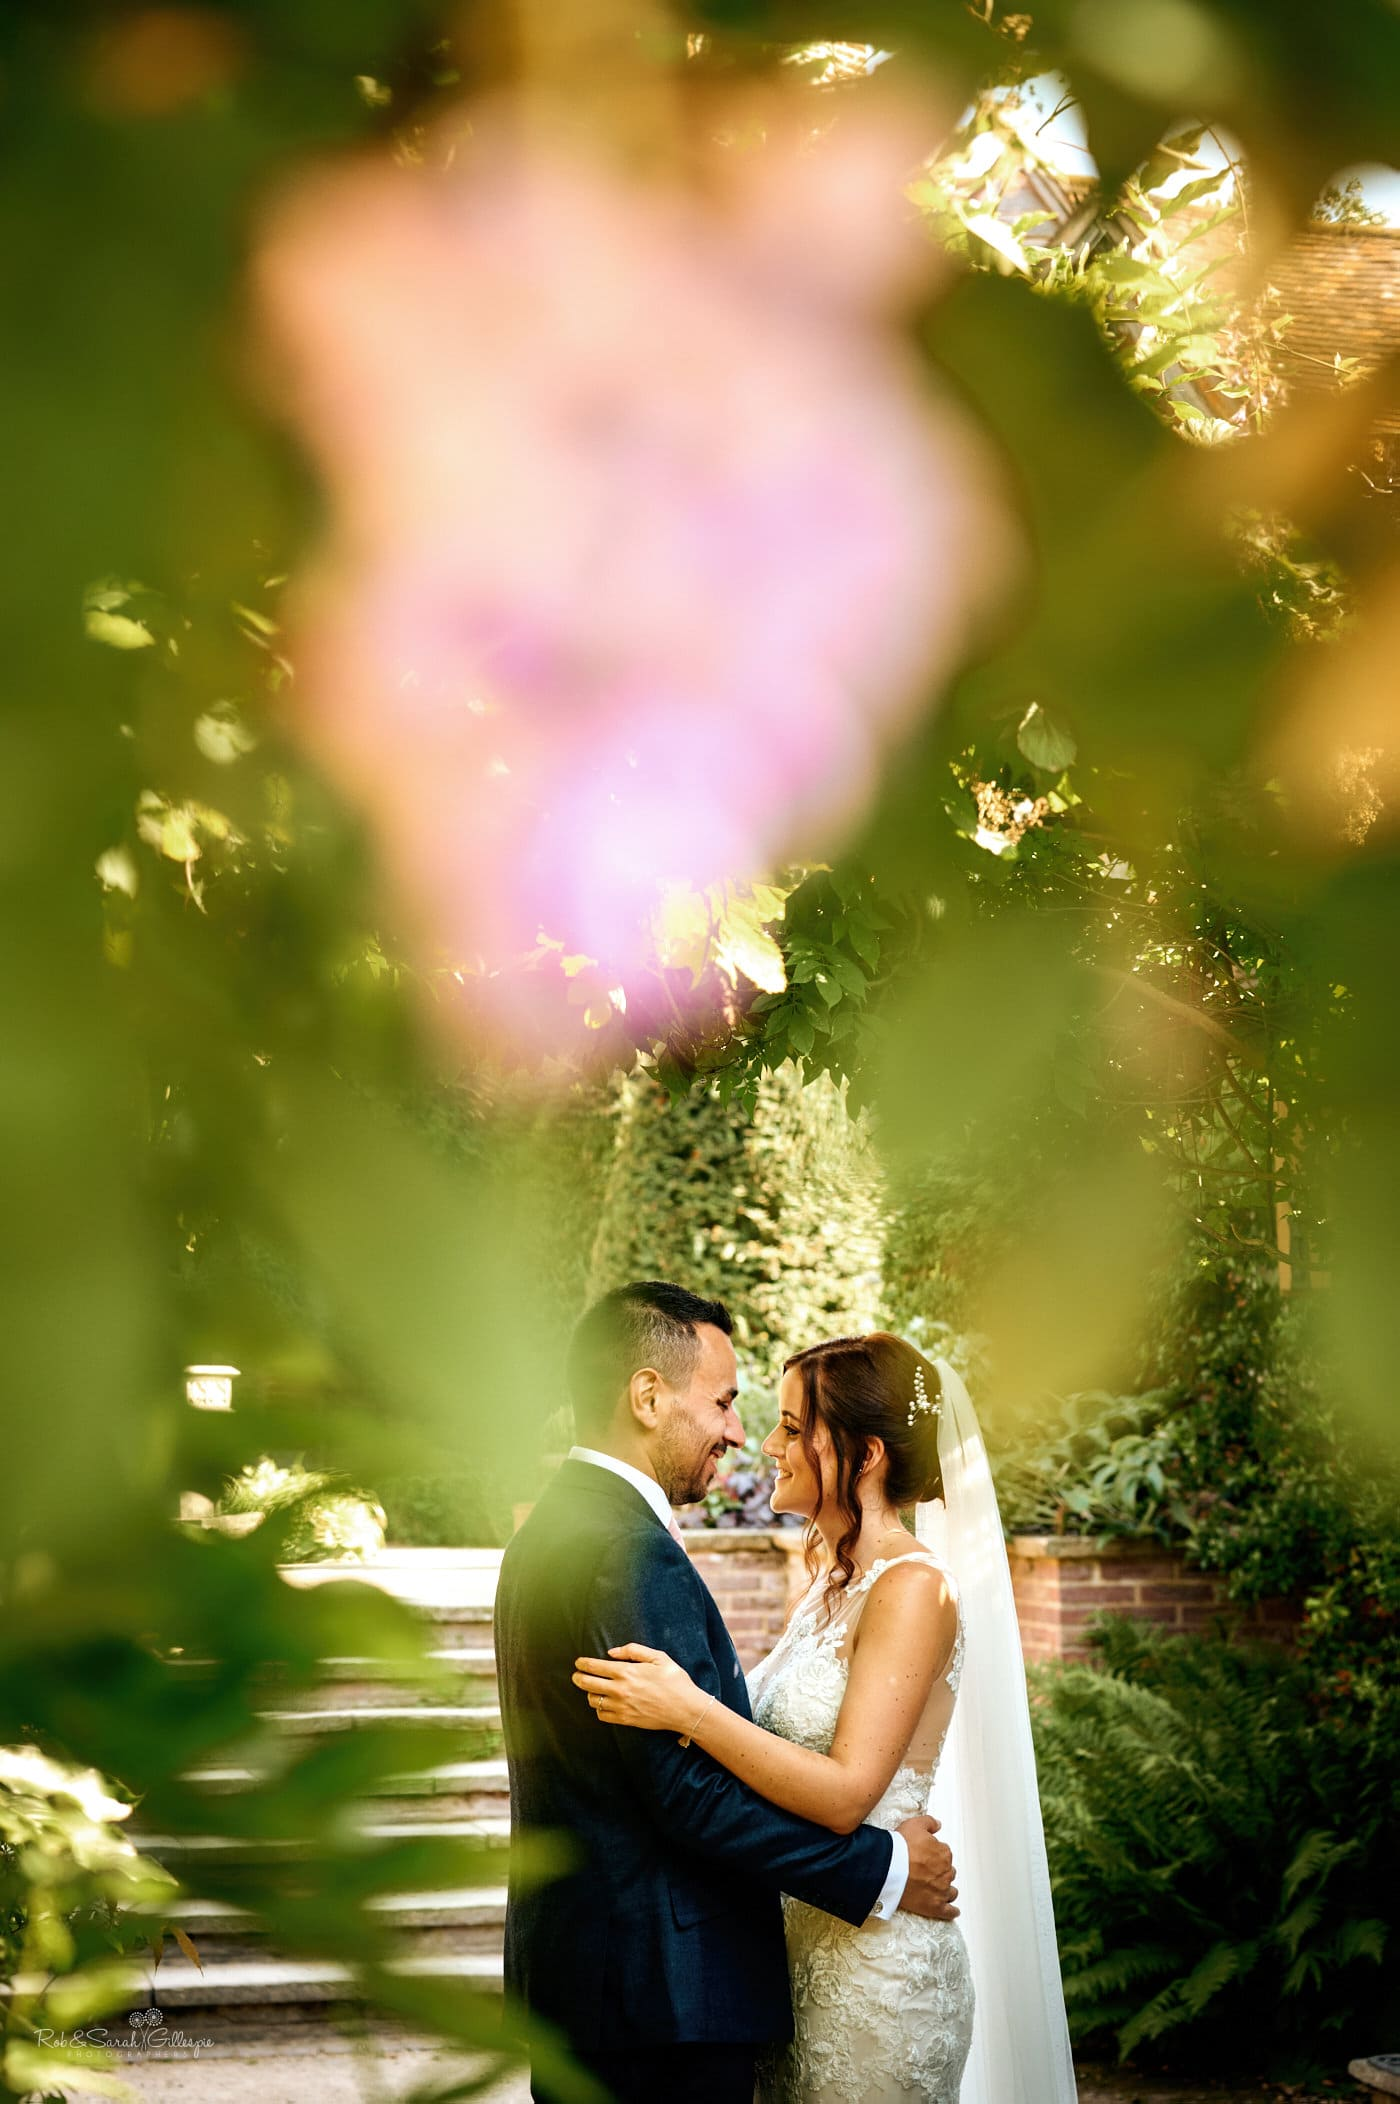 Bride and groom together at Gorcott Hall surrounded by gardens